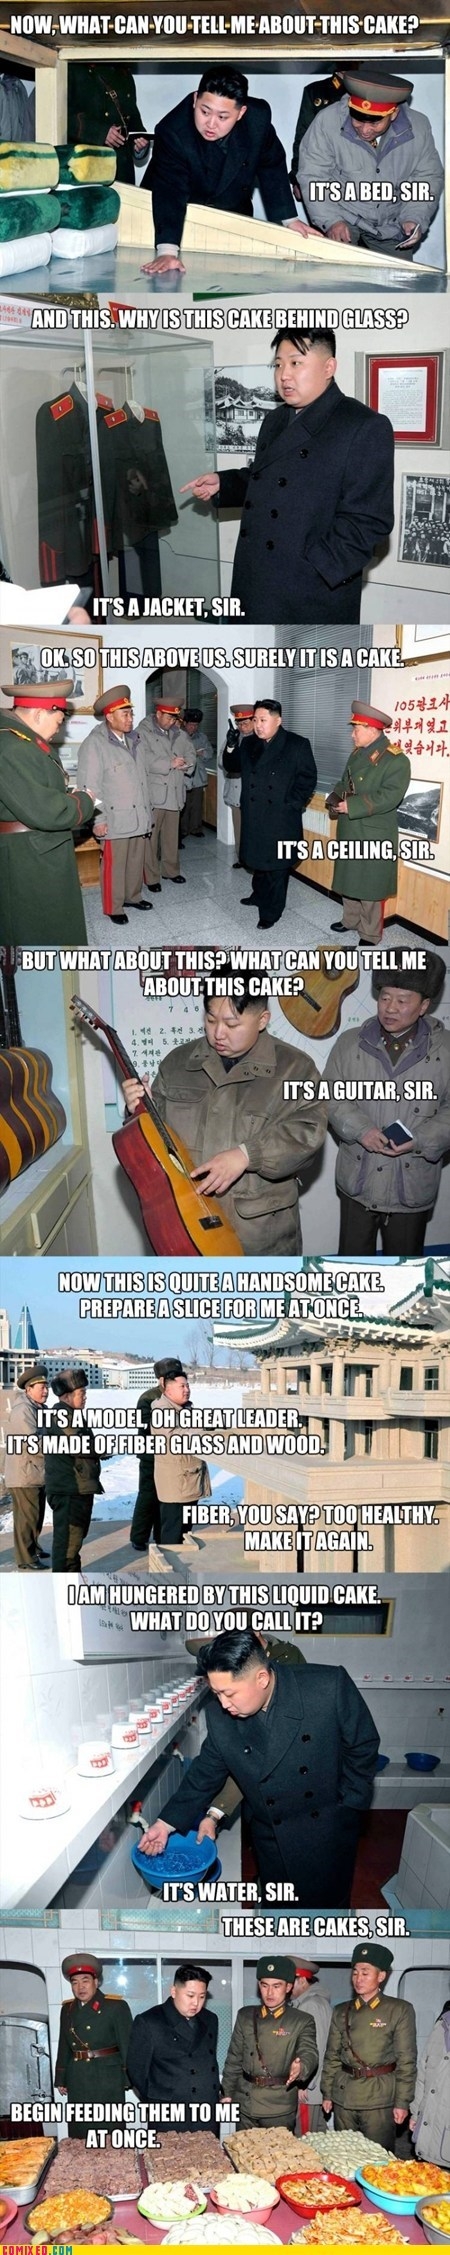 best of week cake kim jung-un North Korea successor the internets - 5779106304